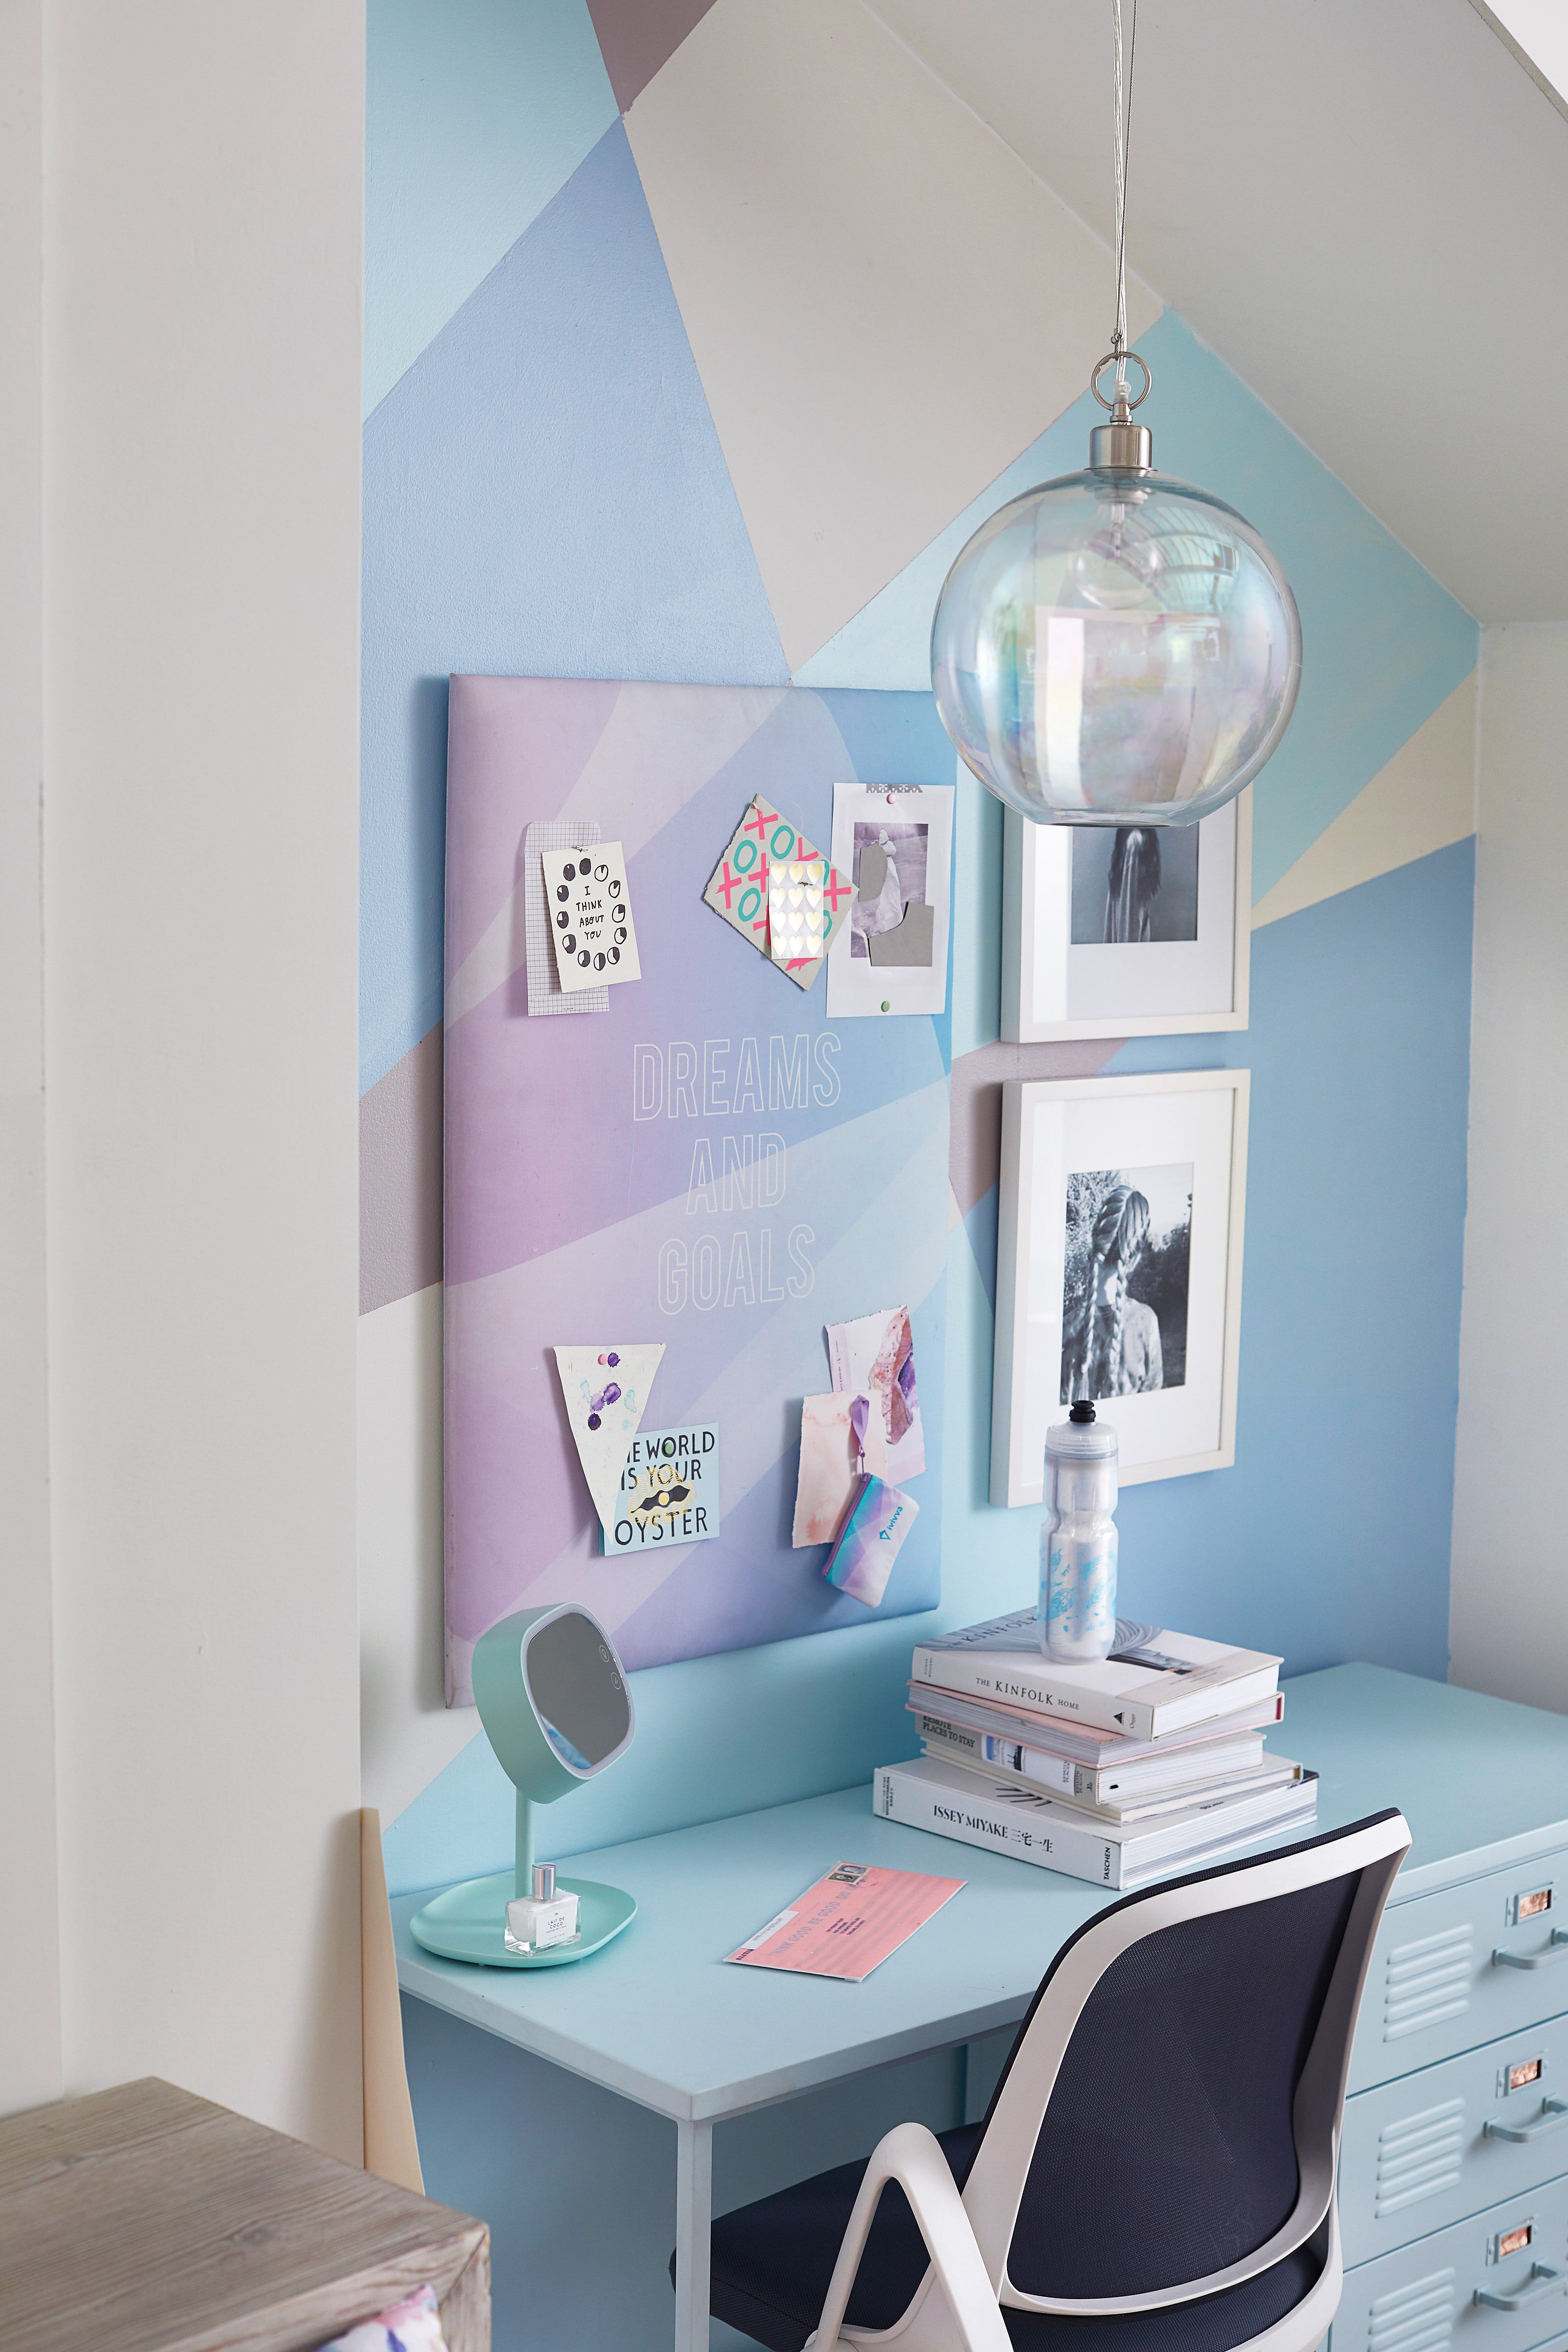 Pin by PBteen on #ivivvaxPBteen | Pinterest | Bedrooms, Room and ...